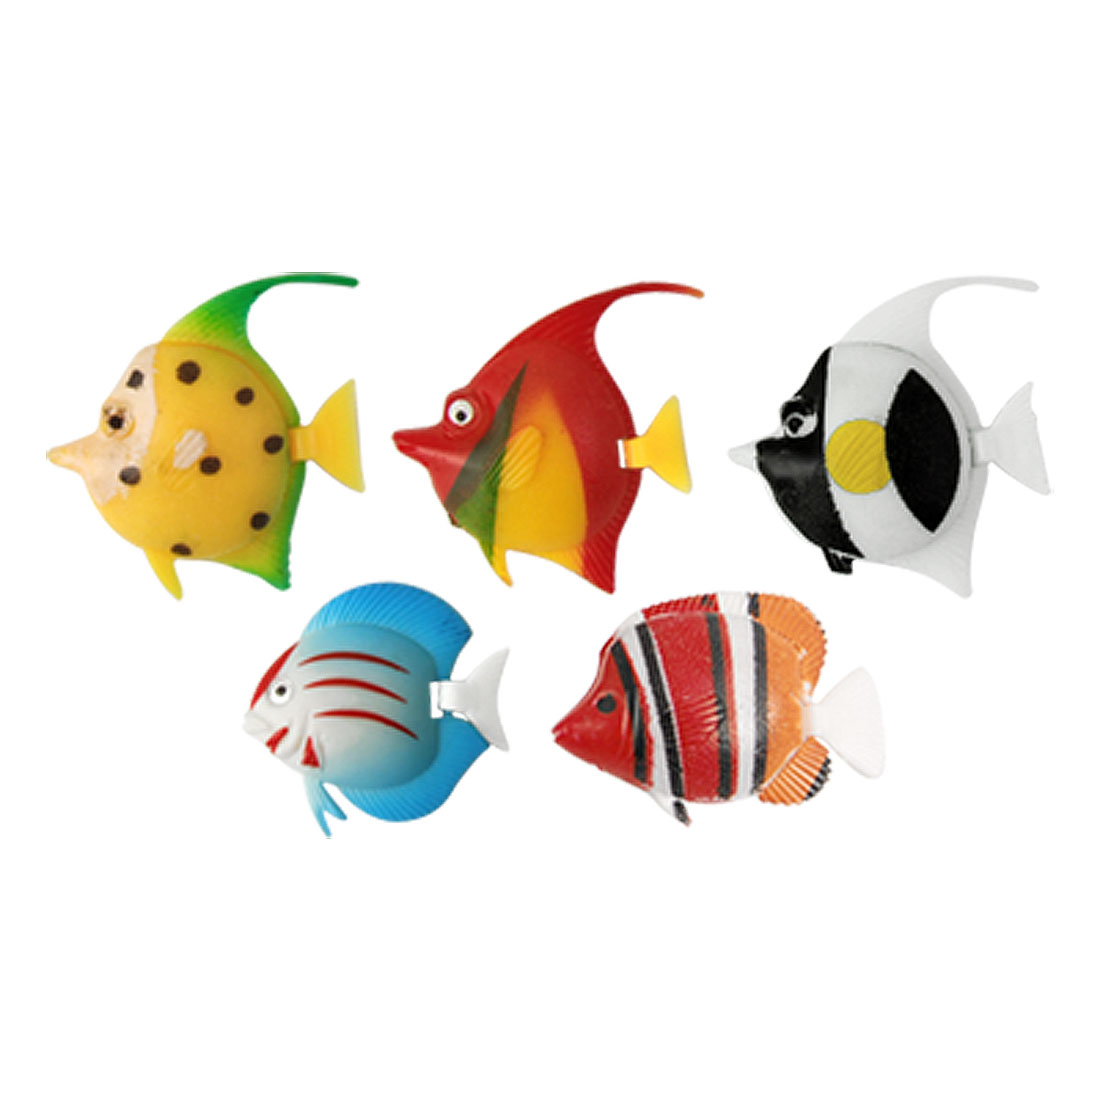 Artificial Multi-colored Plastic Fish Ornament 5 Pcs for Aquarium